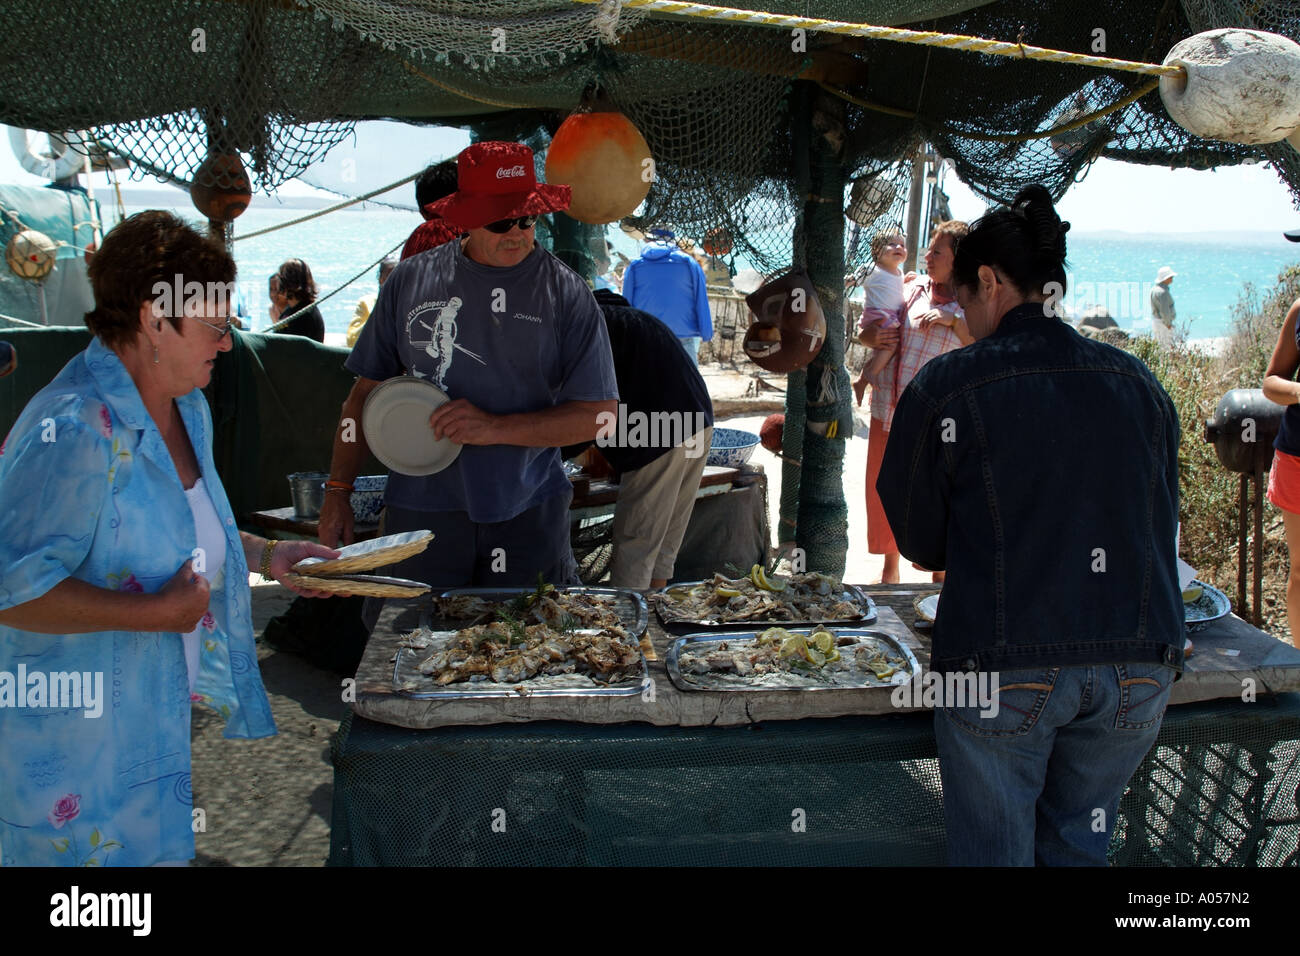 Beach restaurant at Langebaan western Cape South Africa RSA guests helping themselves - Stock Image